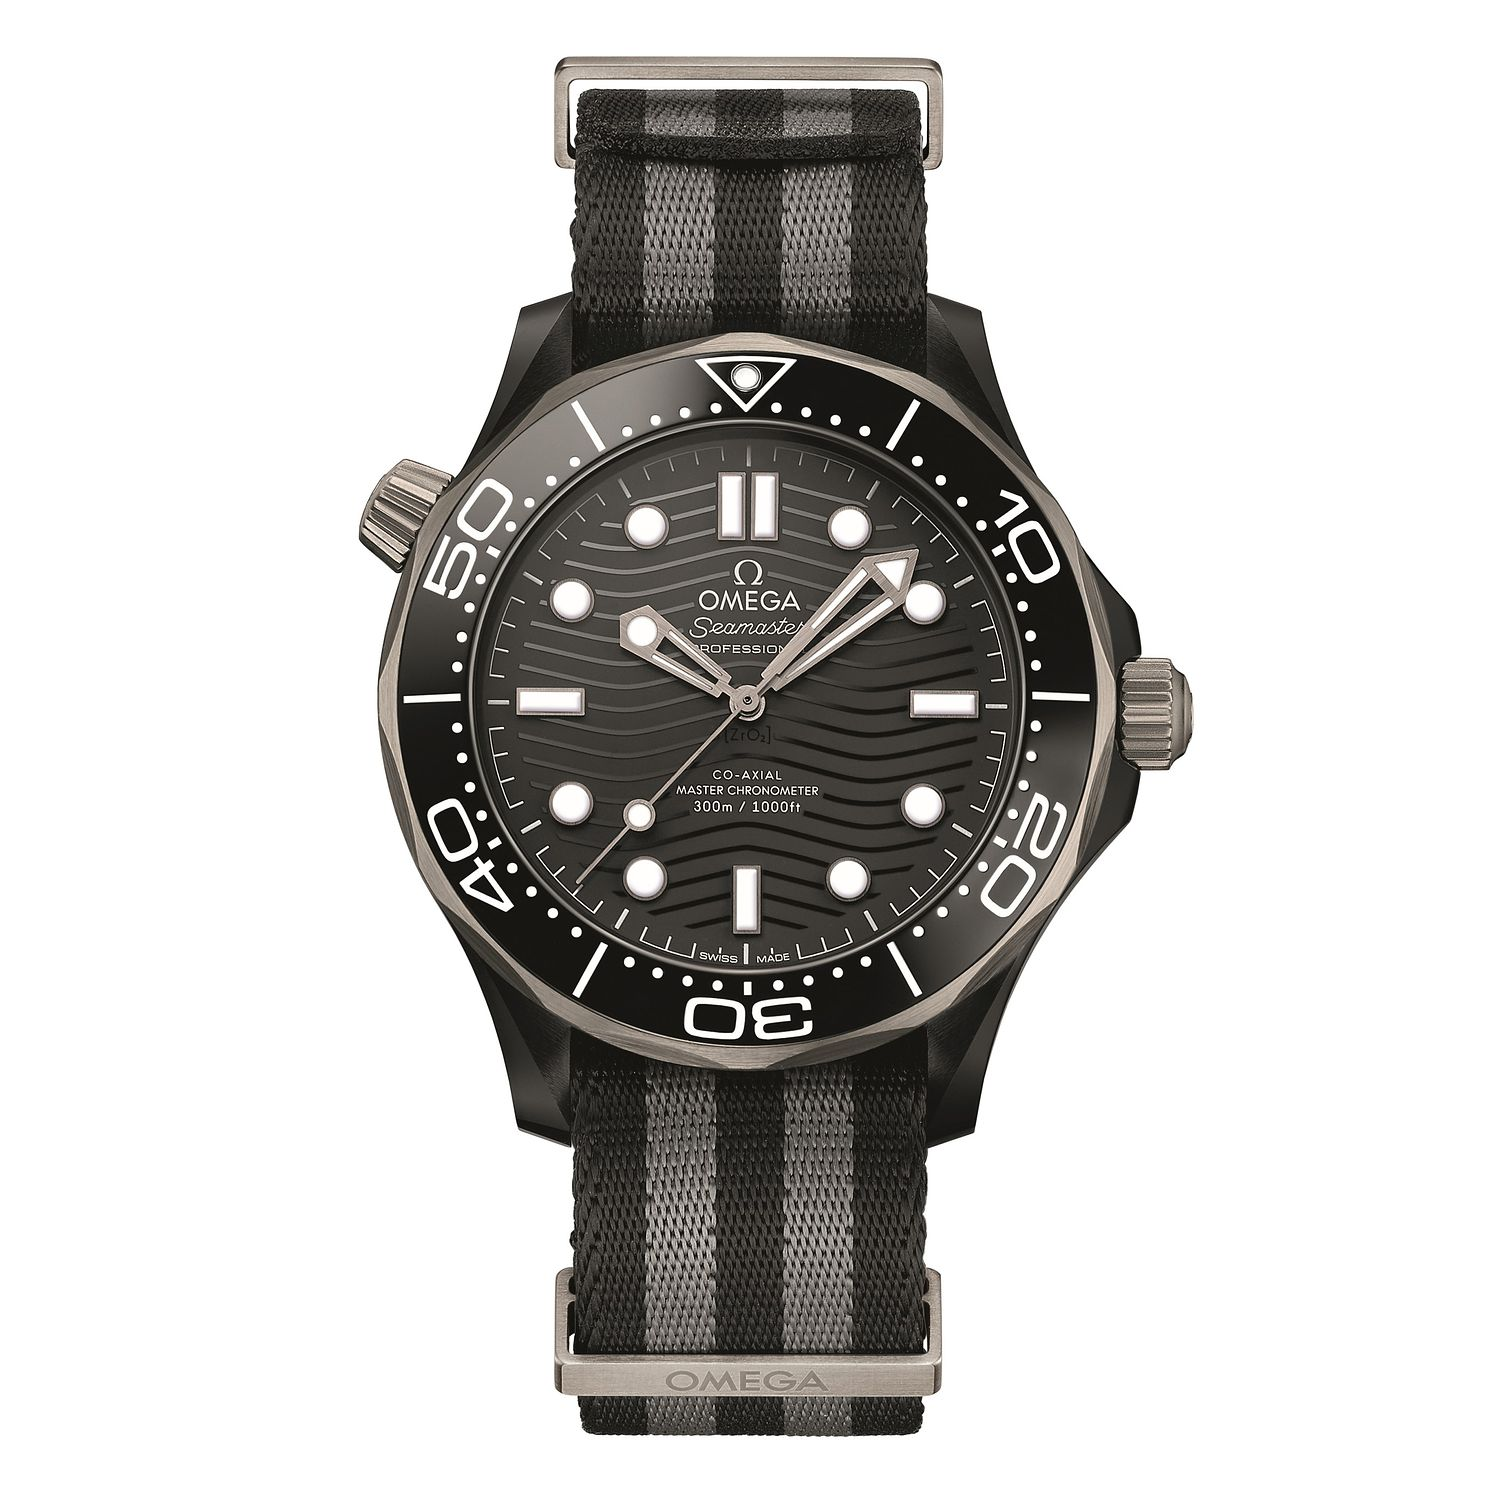 Omega Seamaster Diver Men's Black Fabric Strap Watch - Product number 4346149